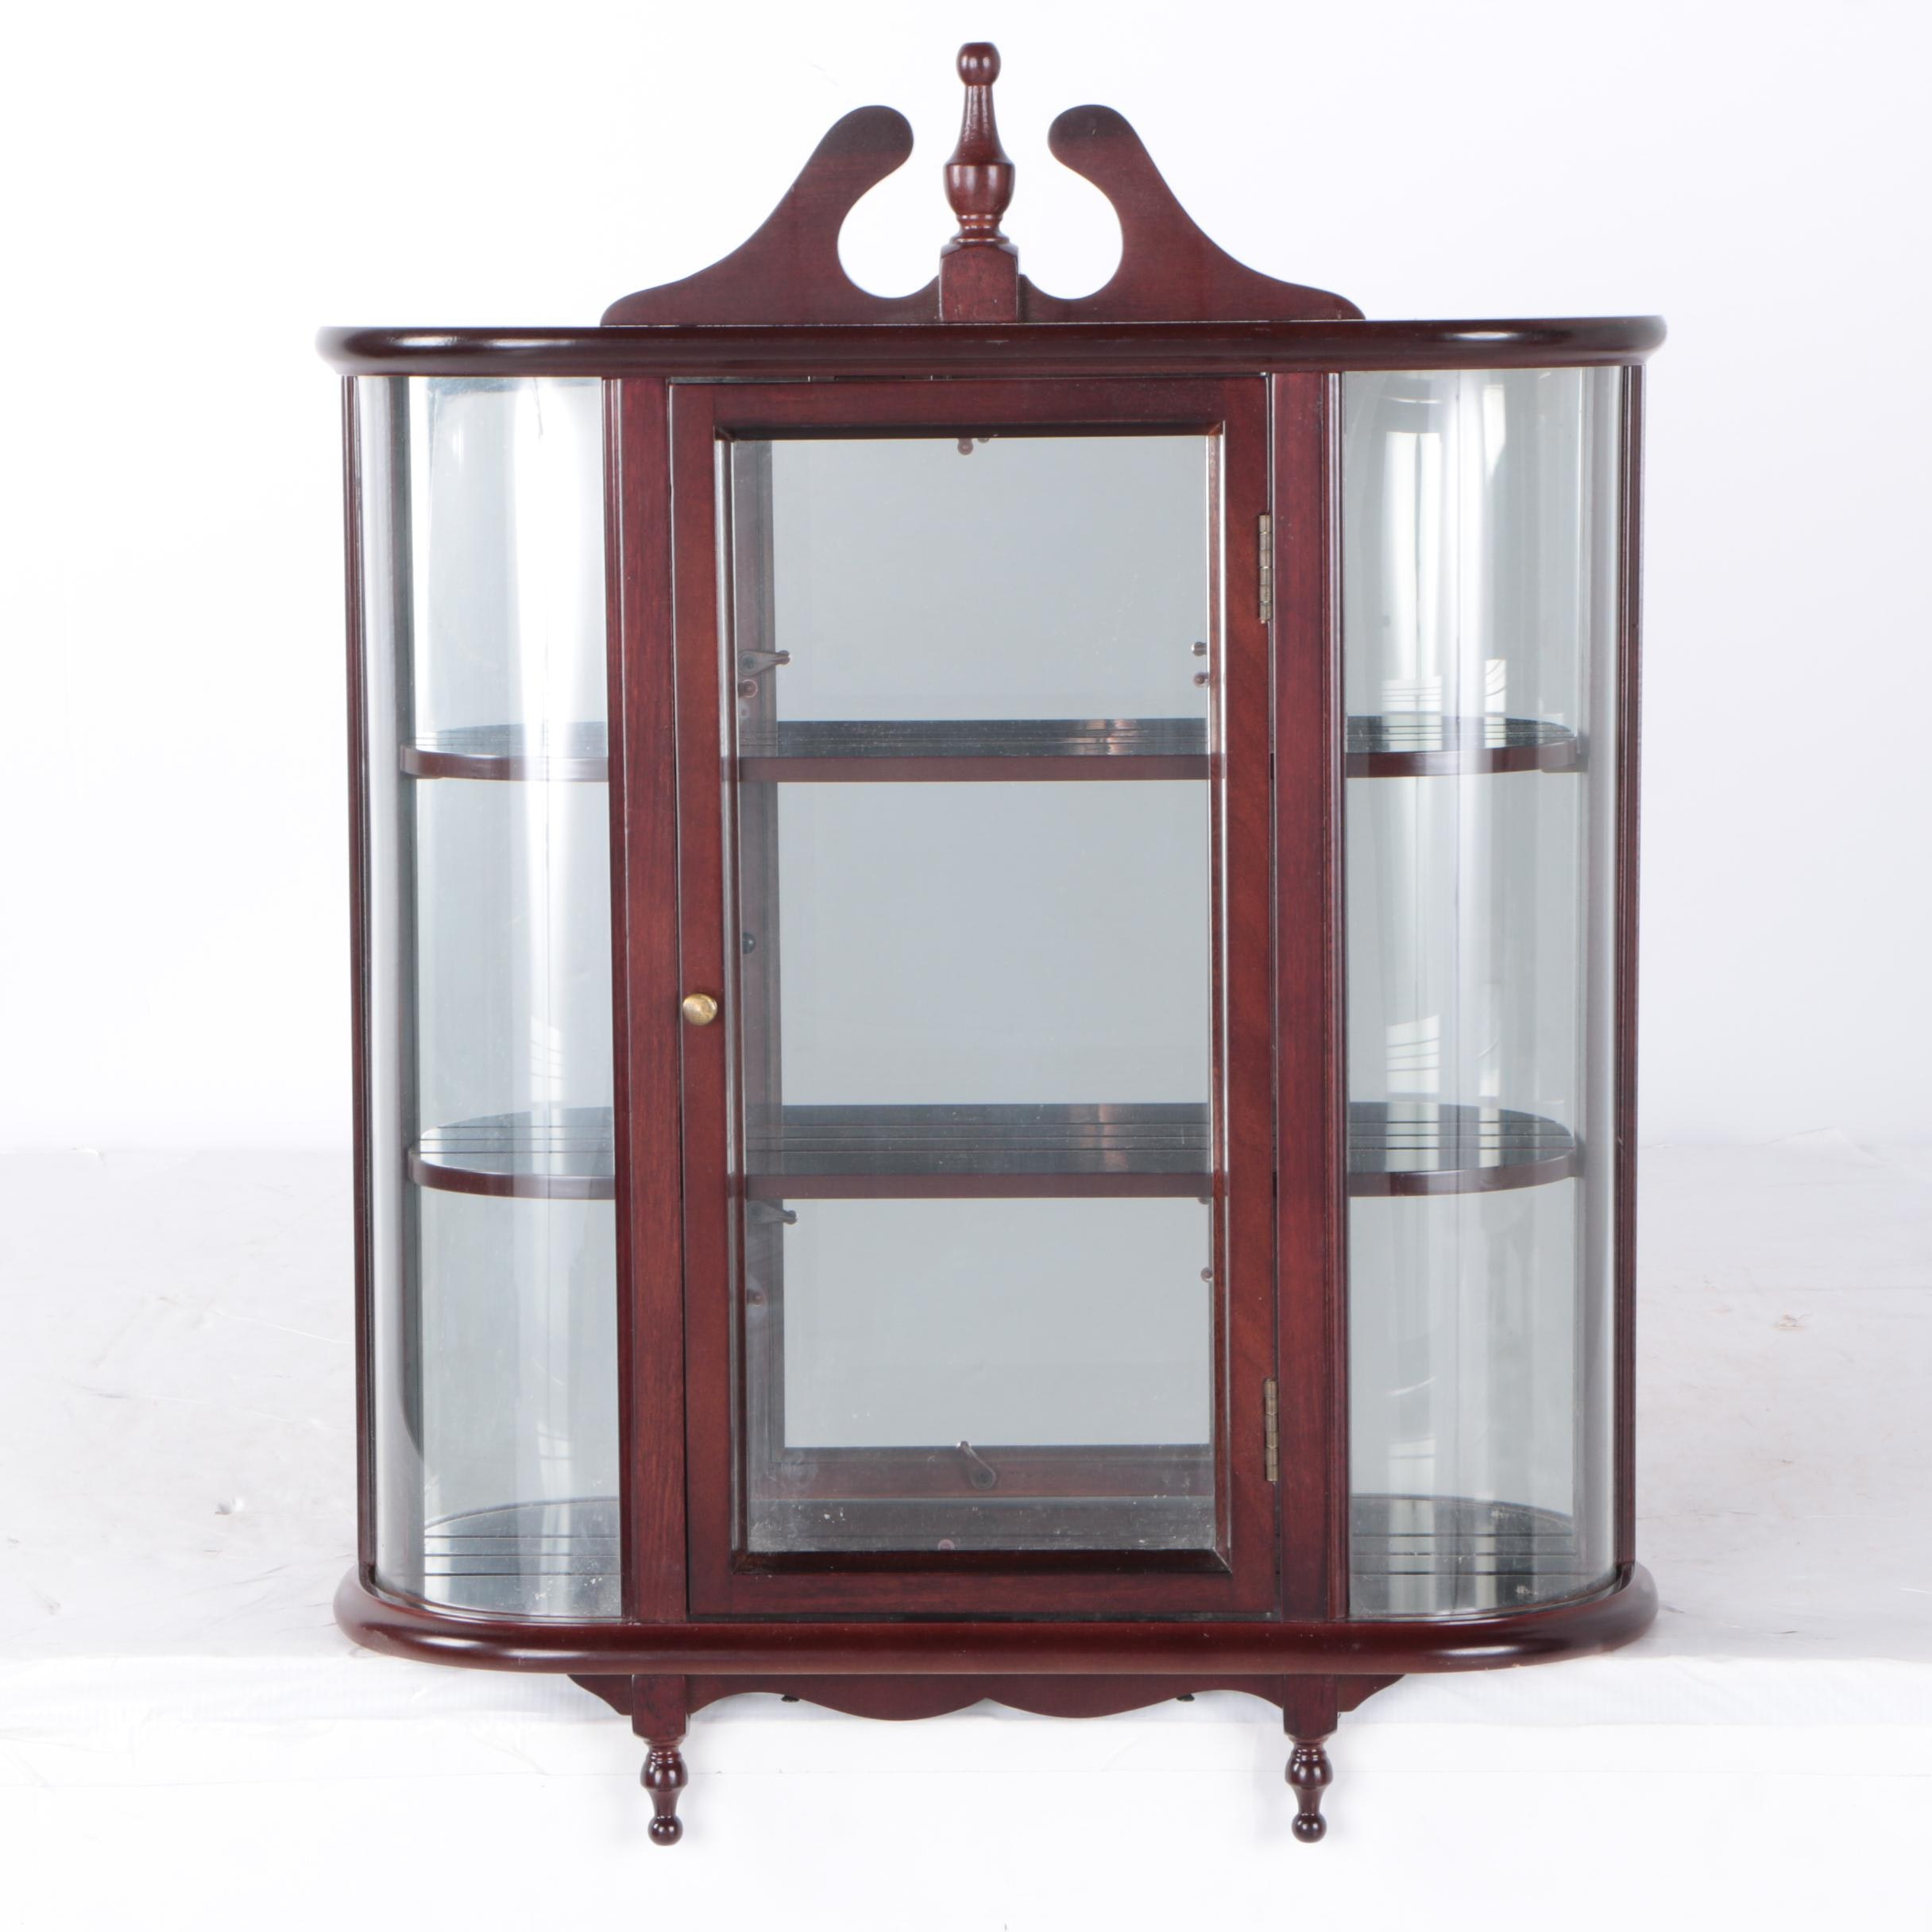 Hanging Curio Cabinet By The Bombay Company ...